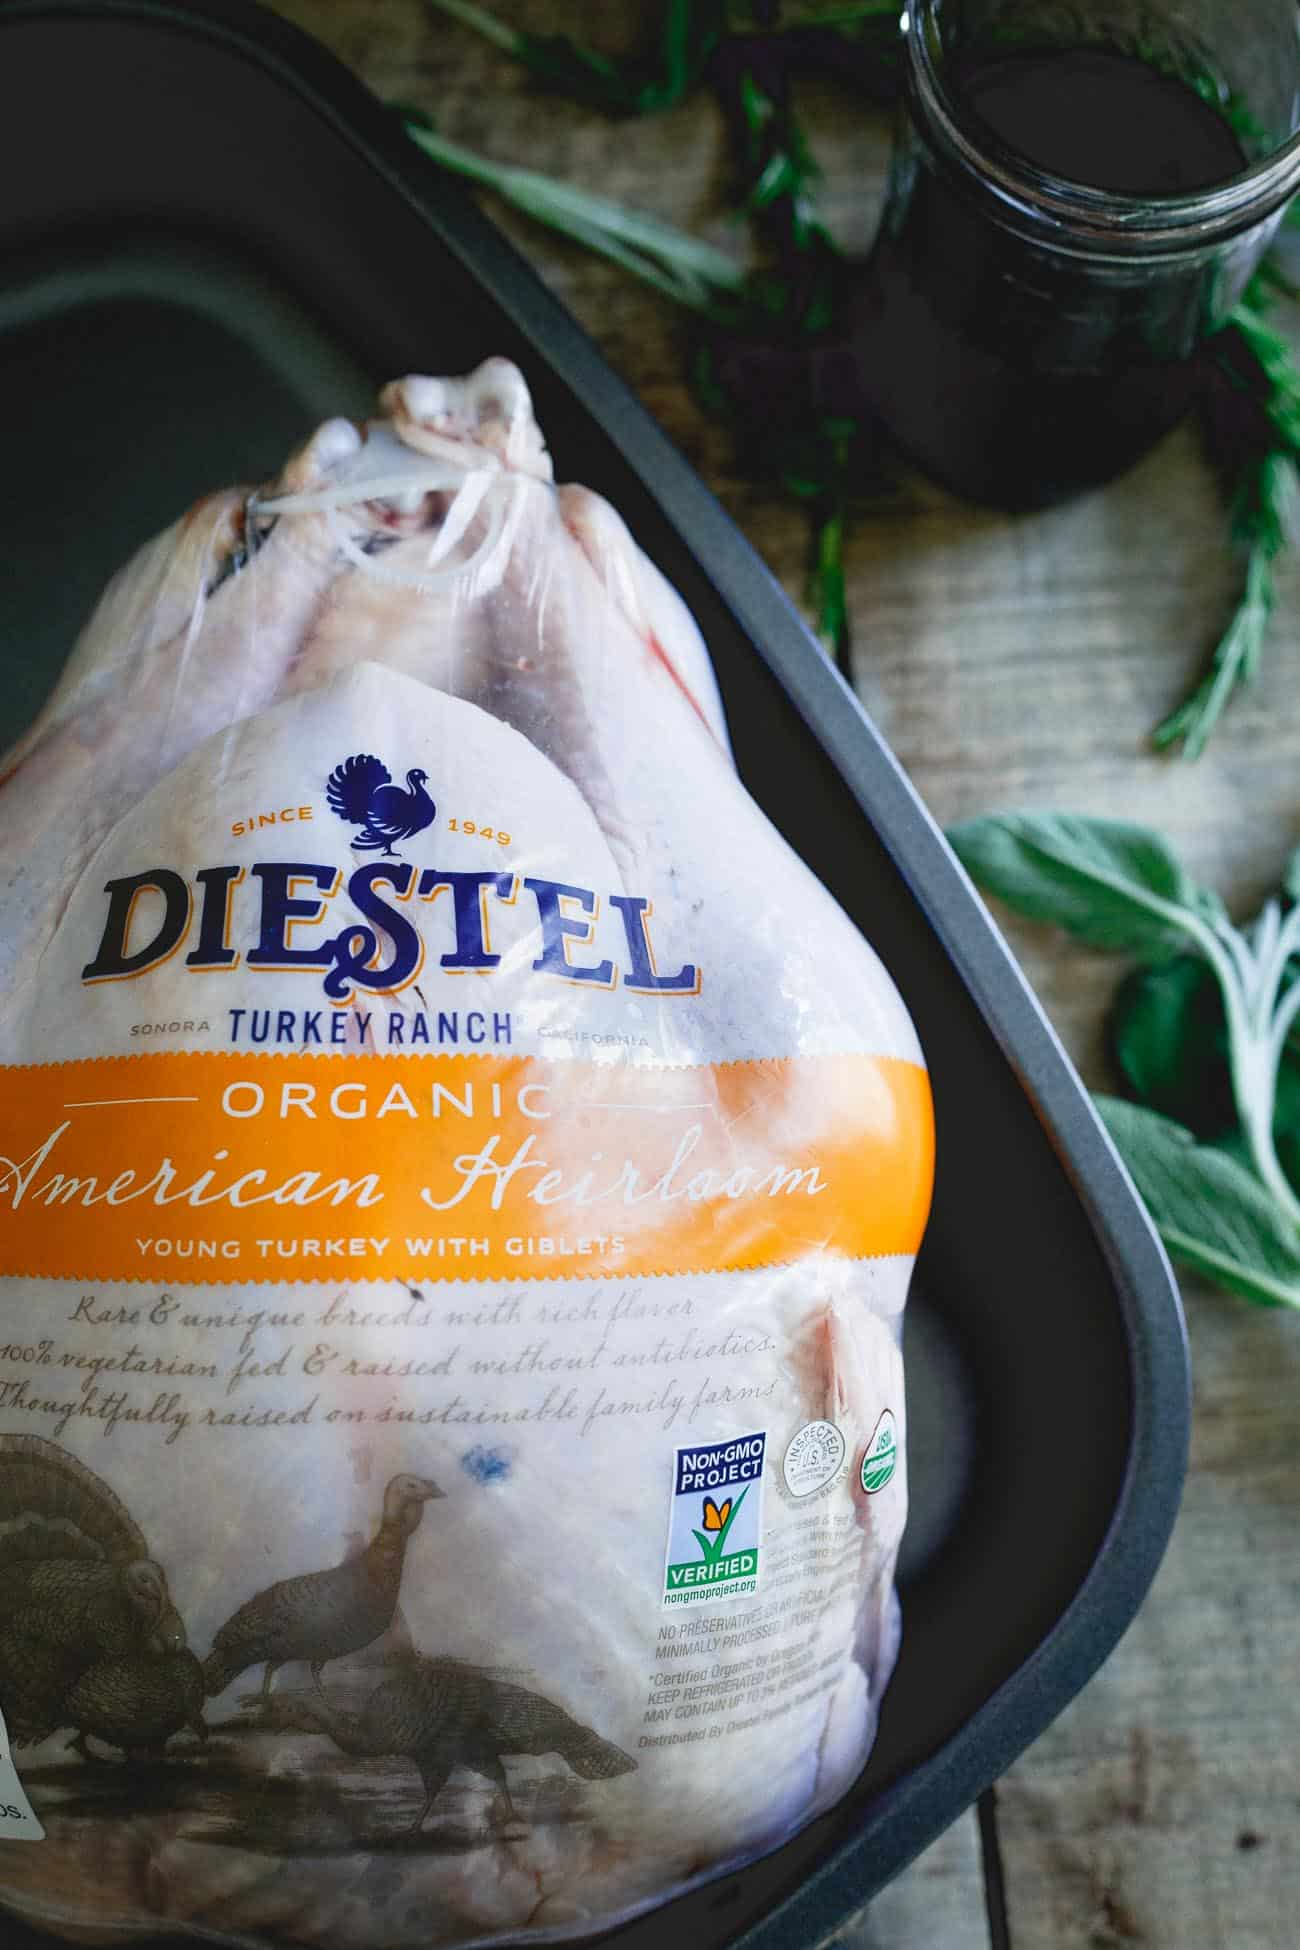 Diestel turkey ranch's organic American heirloom turkey is roasted to perfection with a cherry cranberry glaze.